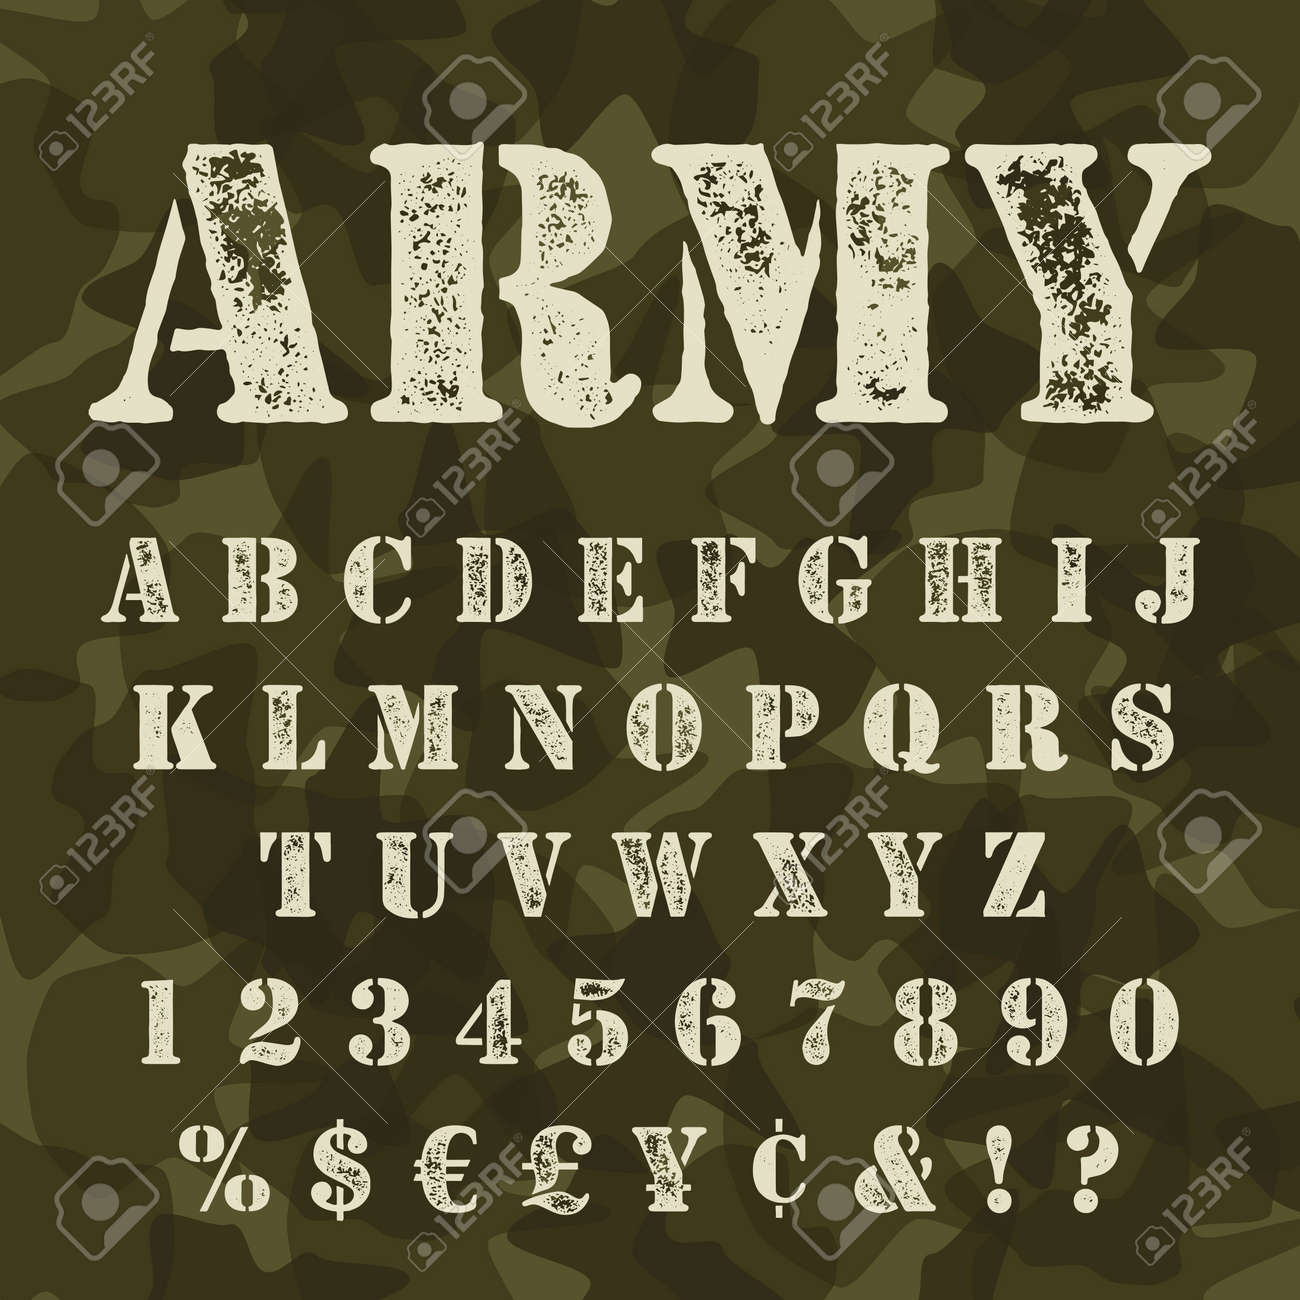 Military Stencil Alphabet Set Army Stencial Lettering With